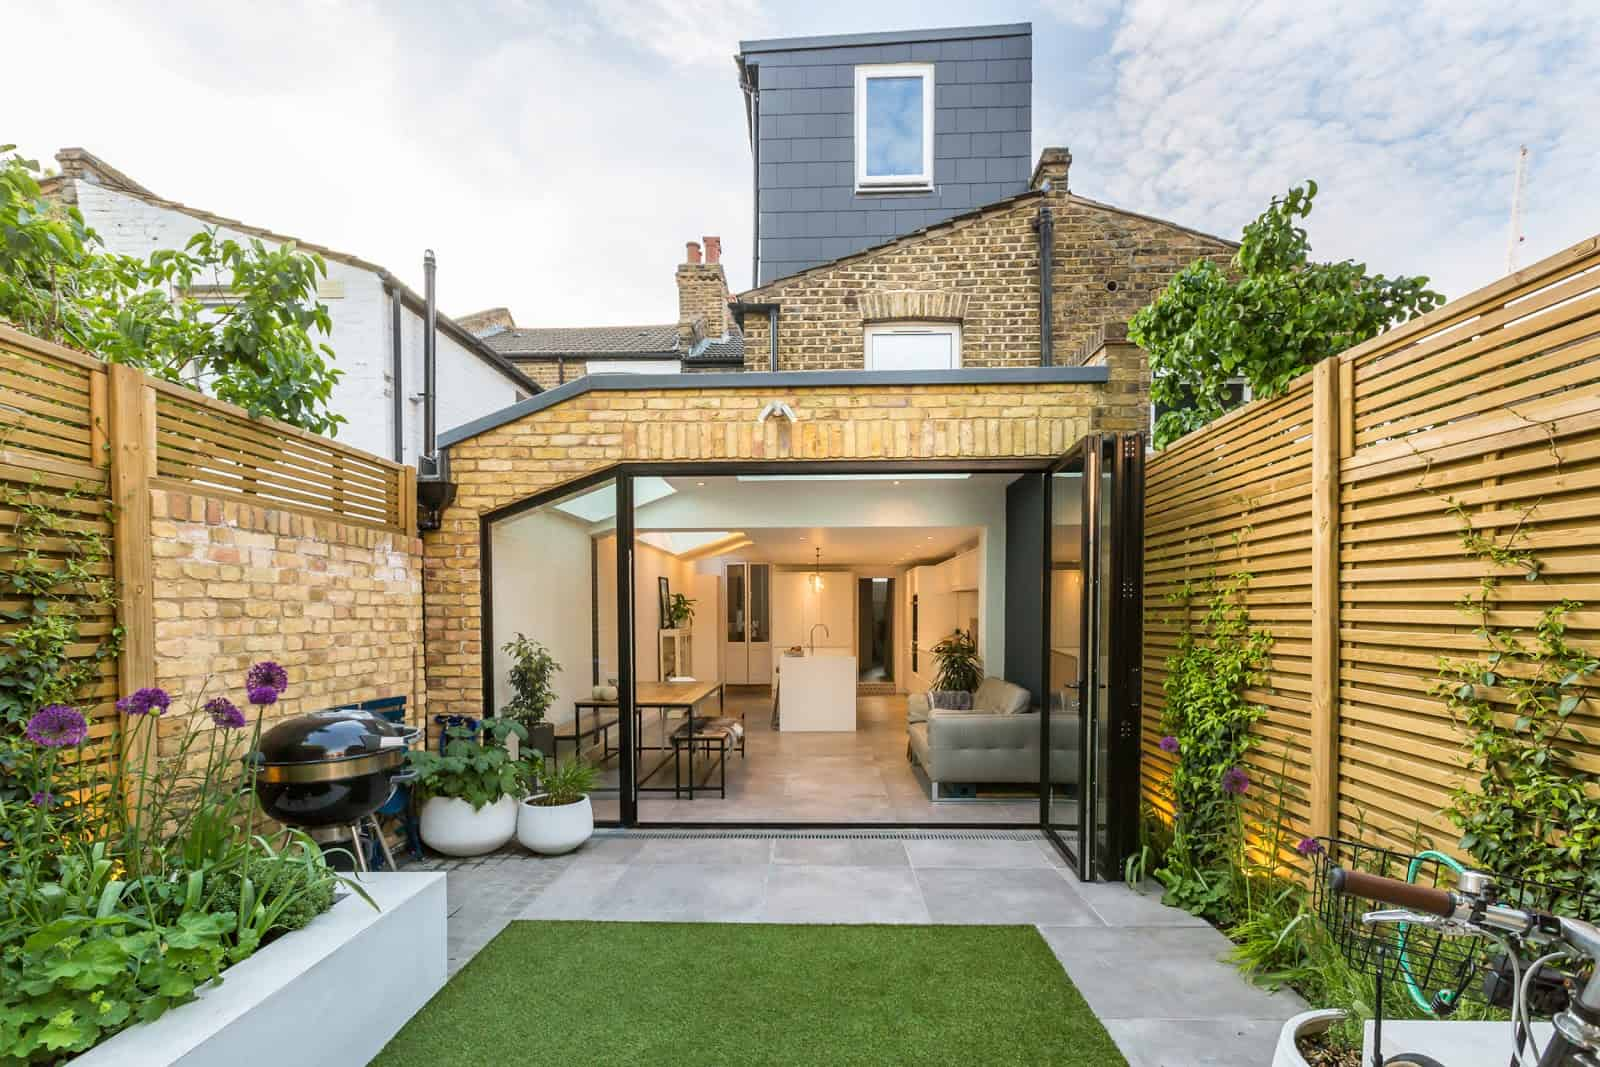 How much does a kitchen extension cost?